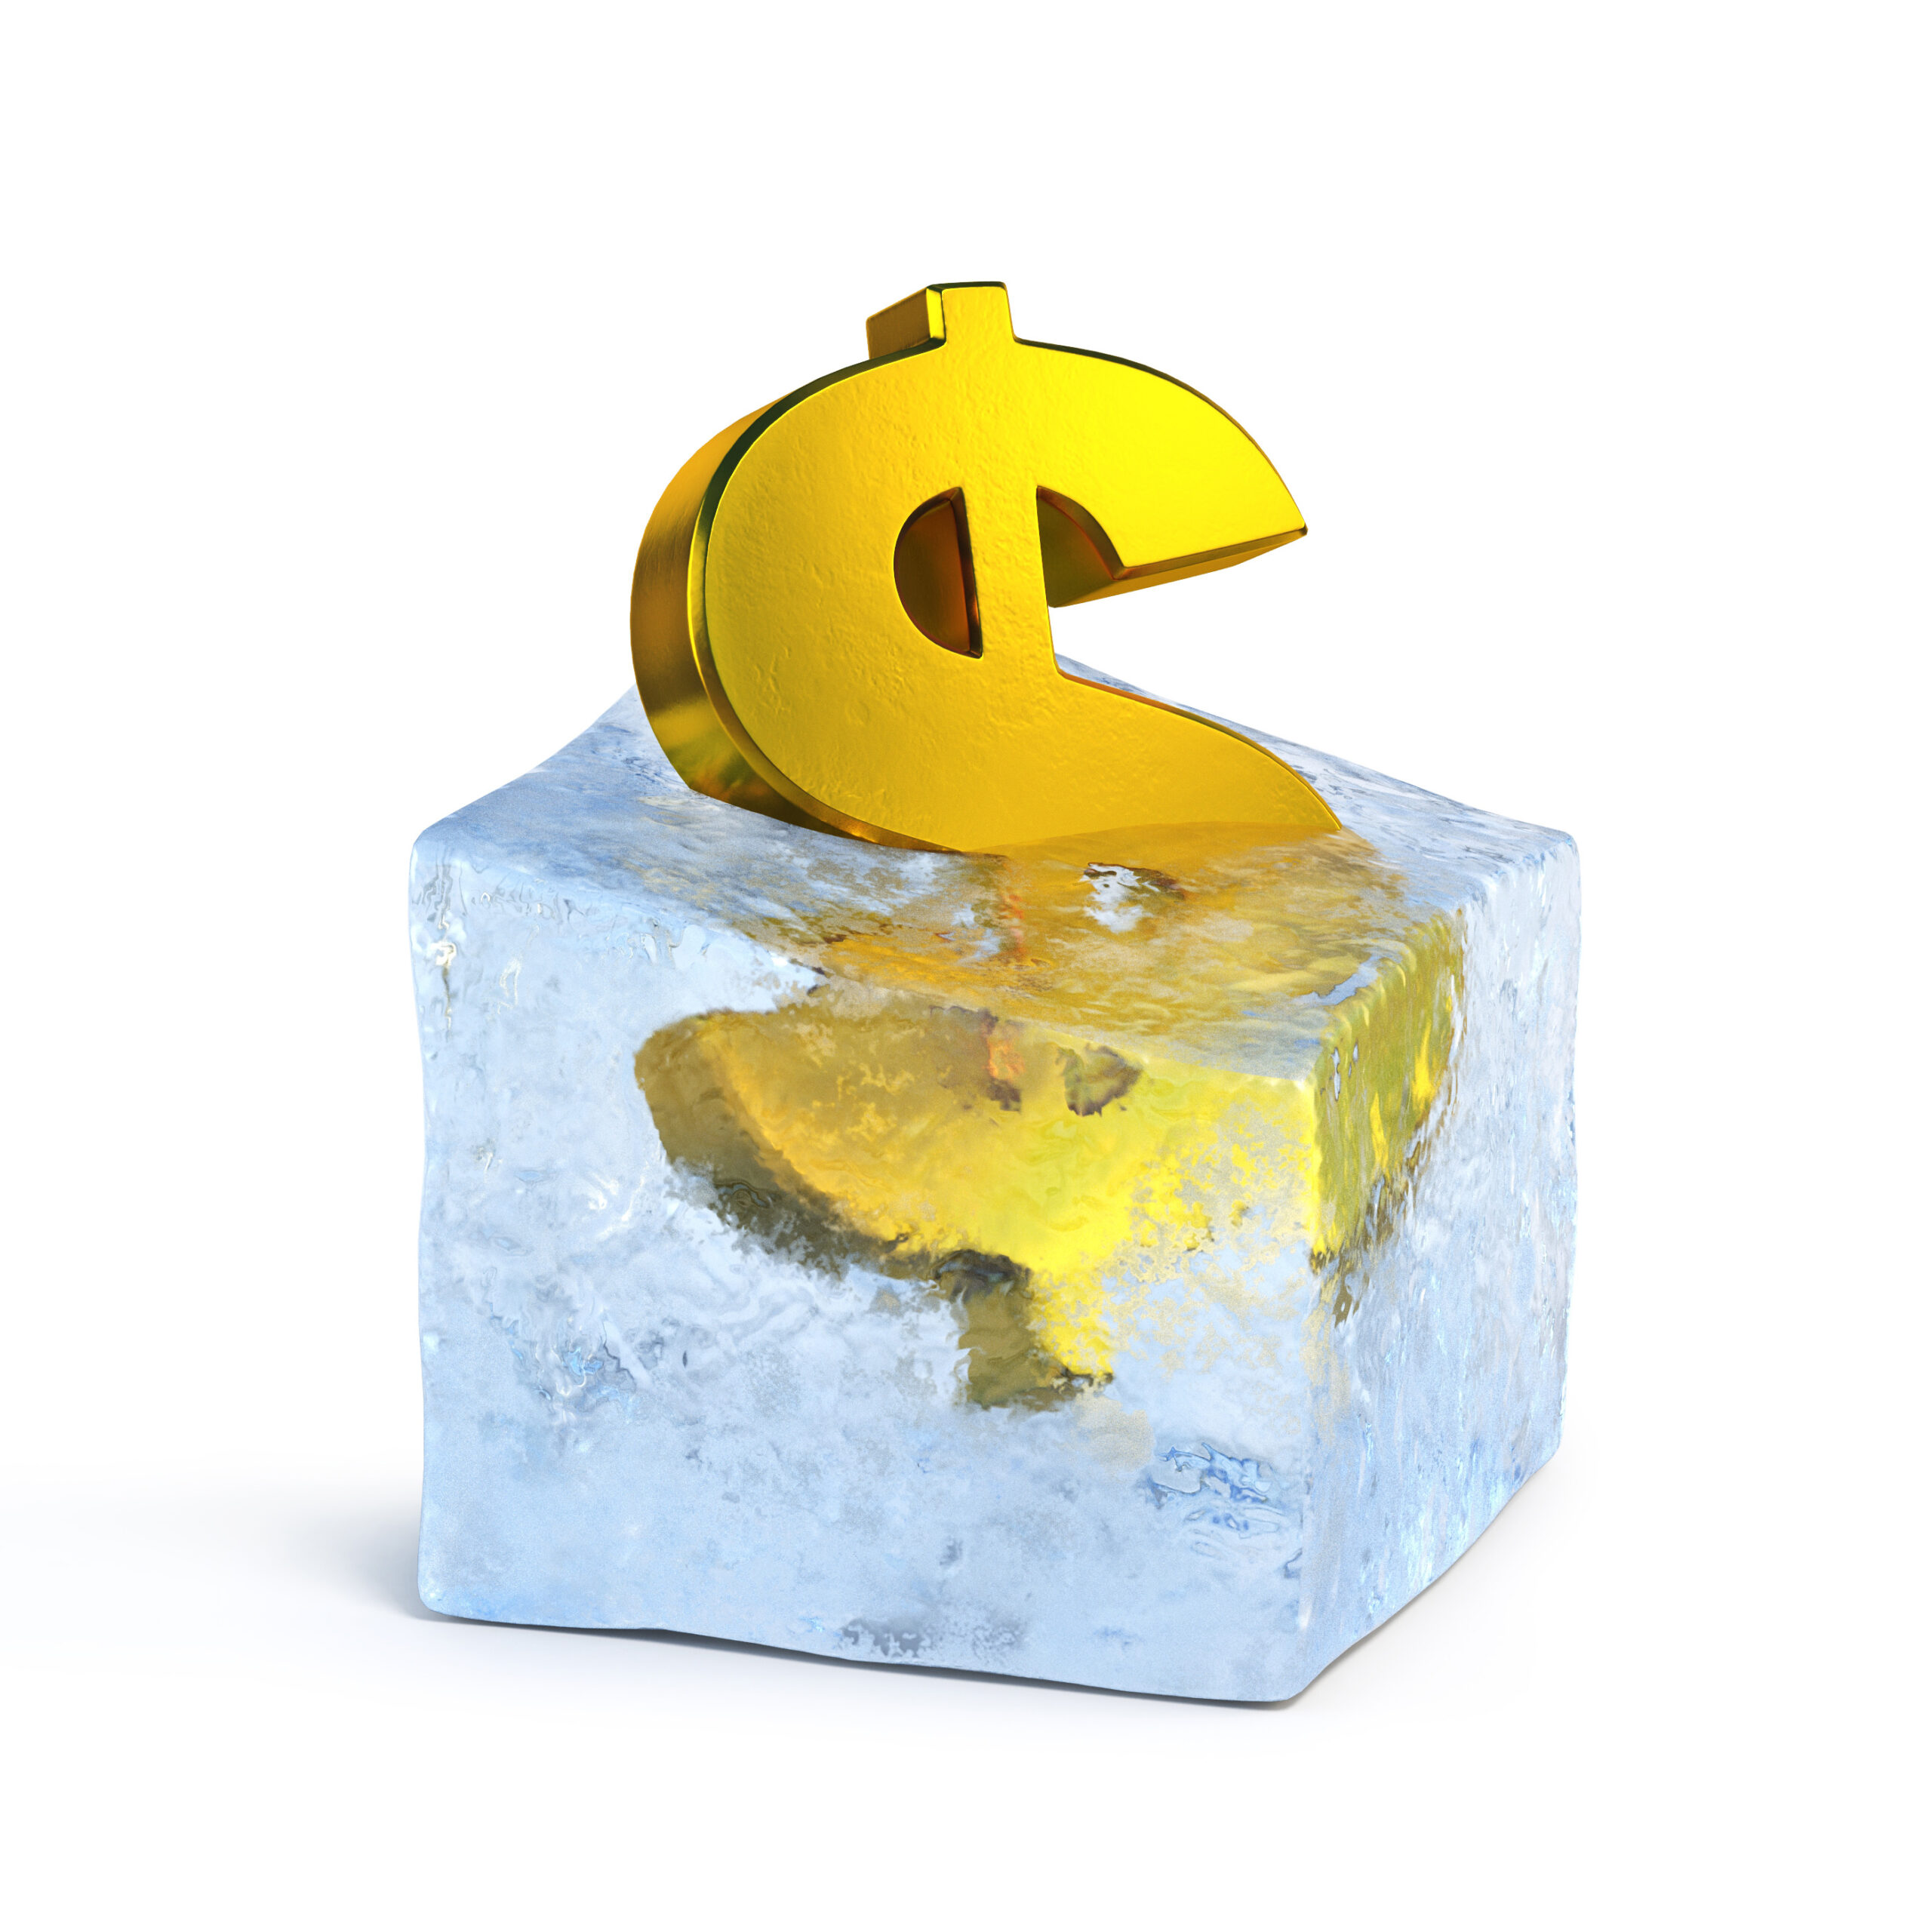 Re-visiting Estate Freezes – a COVID-19 Silver Lining for Business Owners